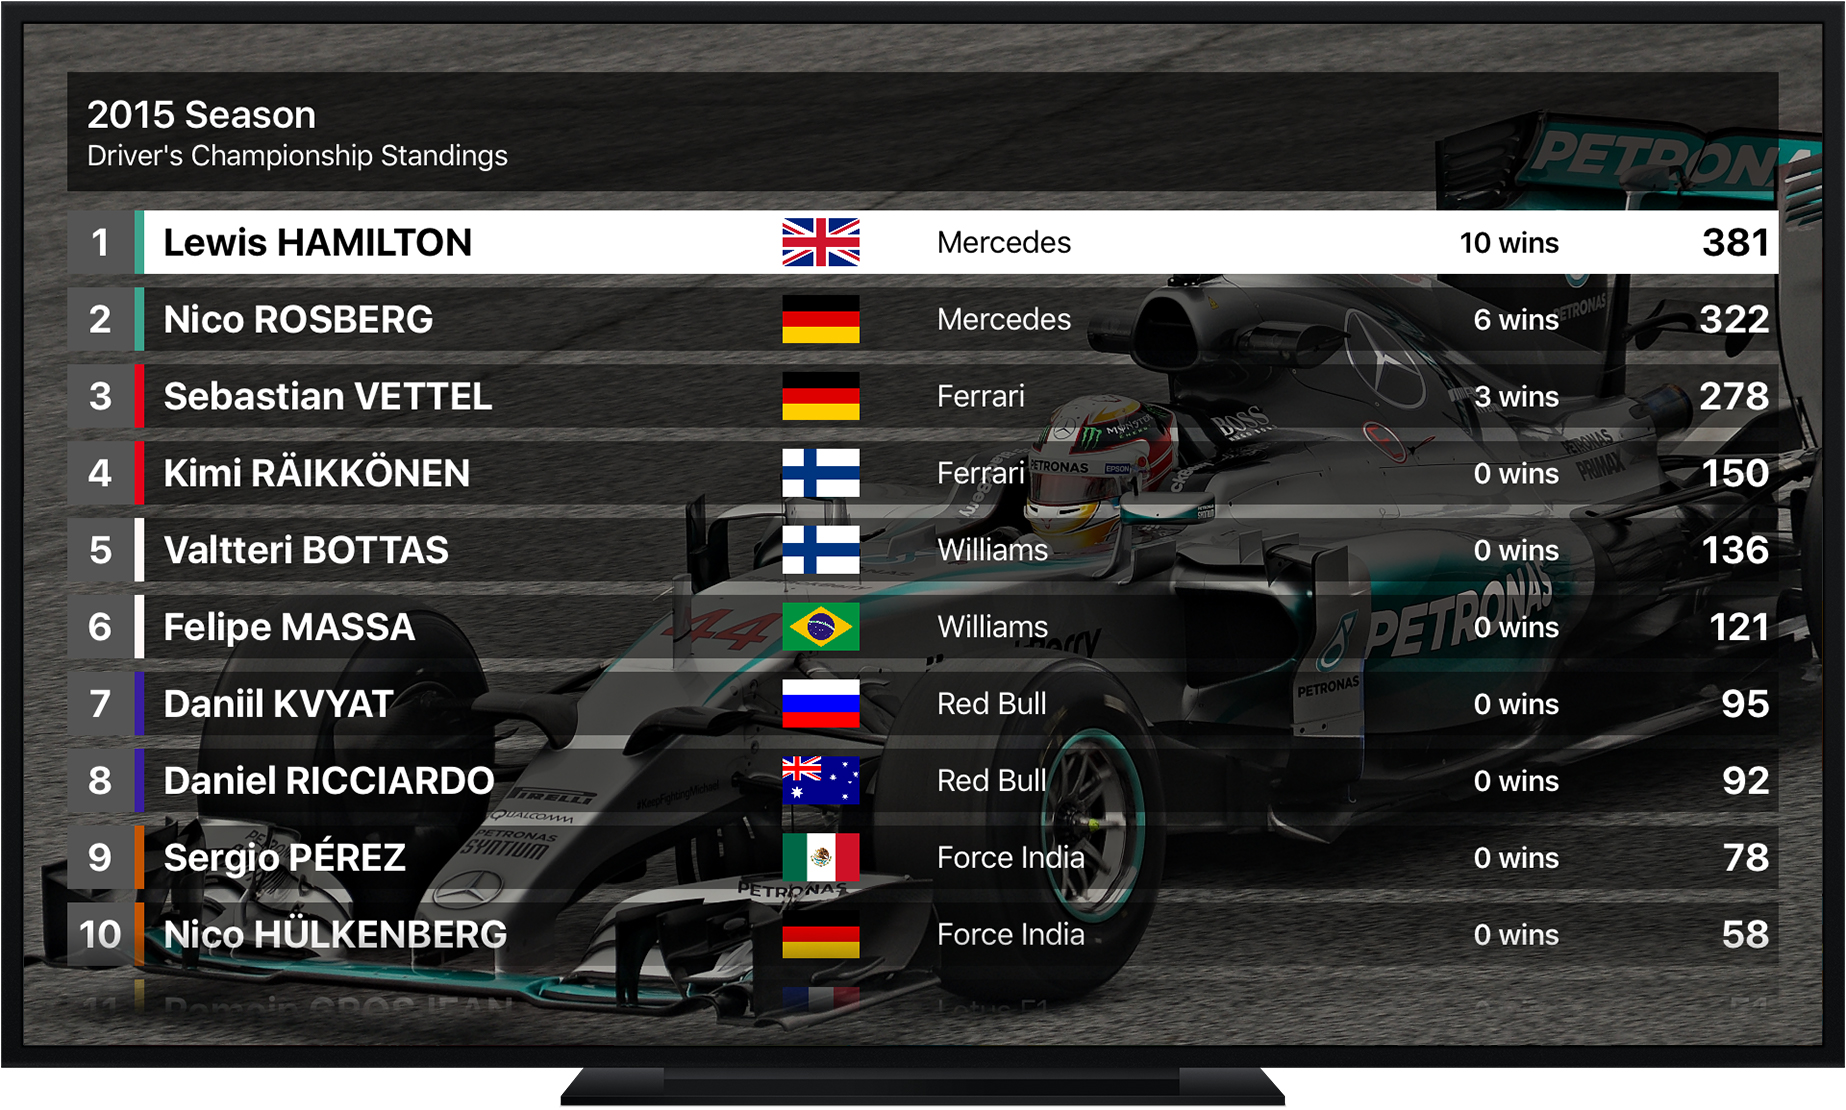 Driver's Championship Standings - Grand Prix Stats